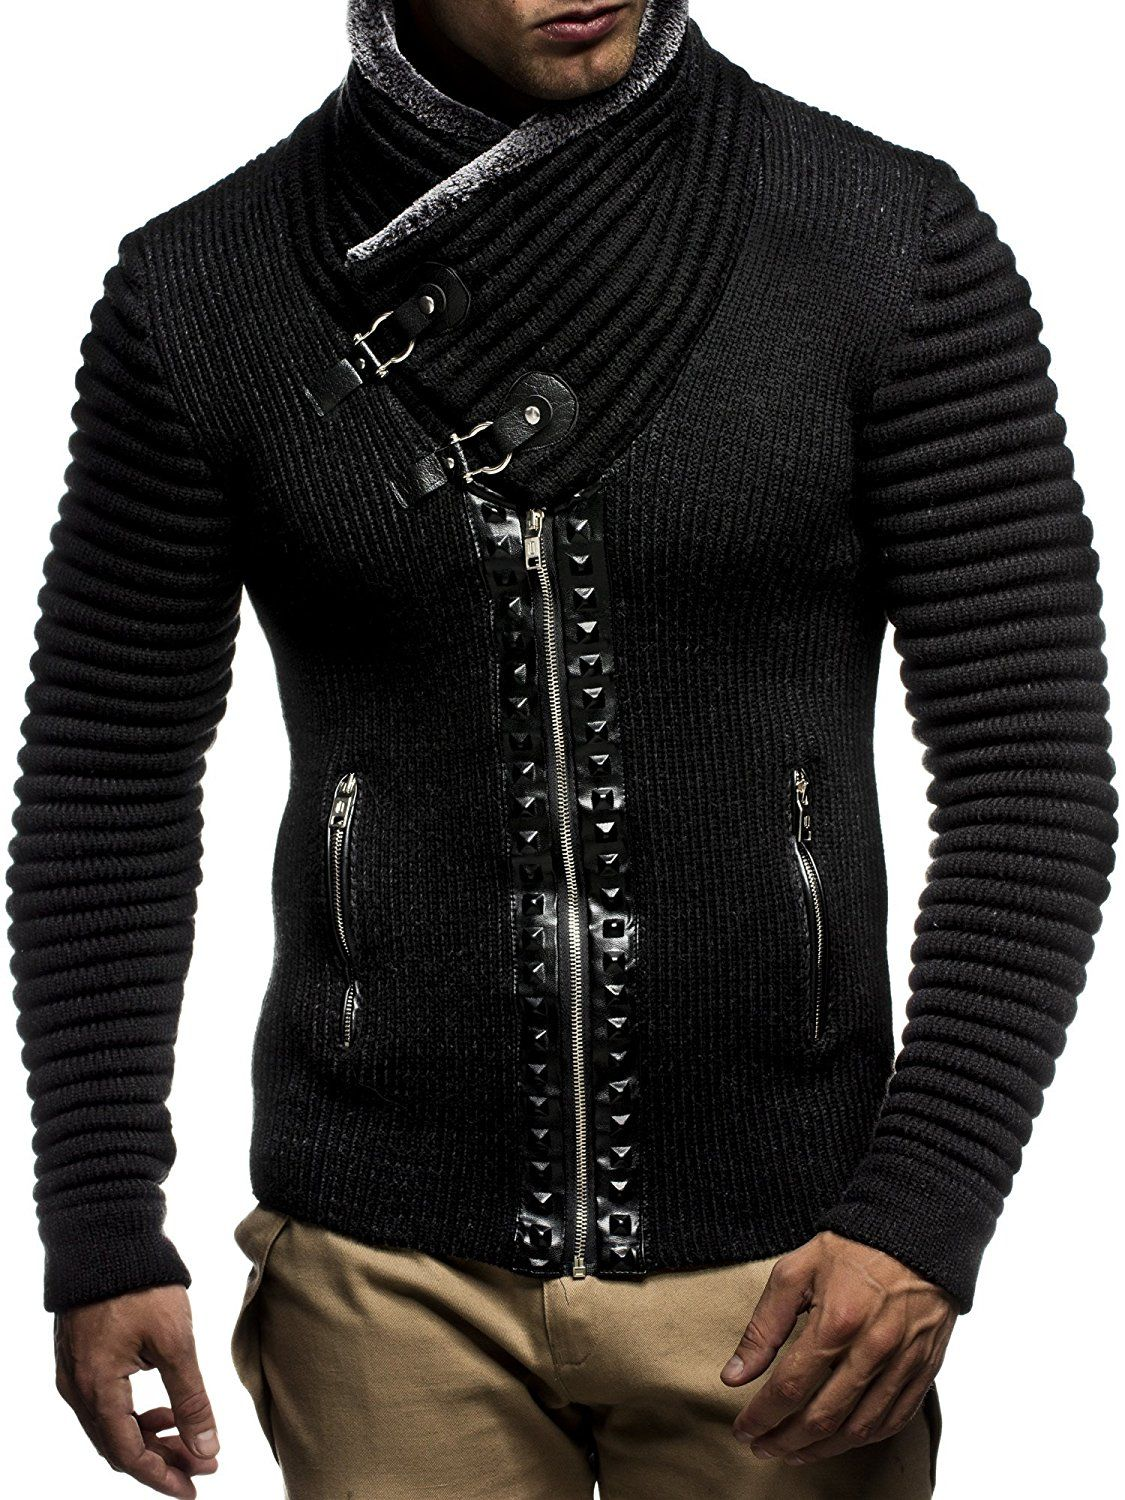 LEIF NELSON Men's Knitted Jacket Cardigan LN5165 | Giyim ...